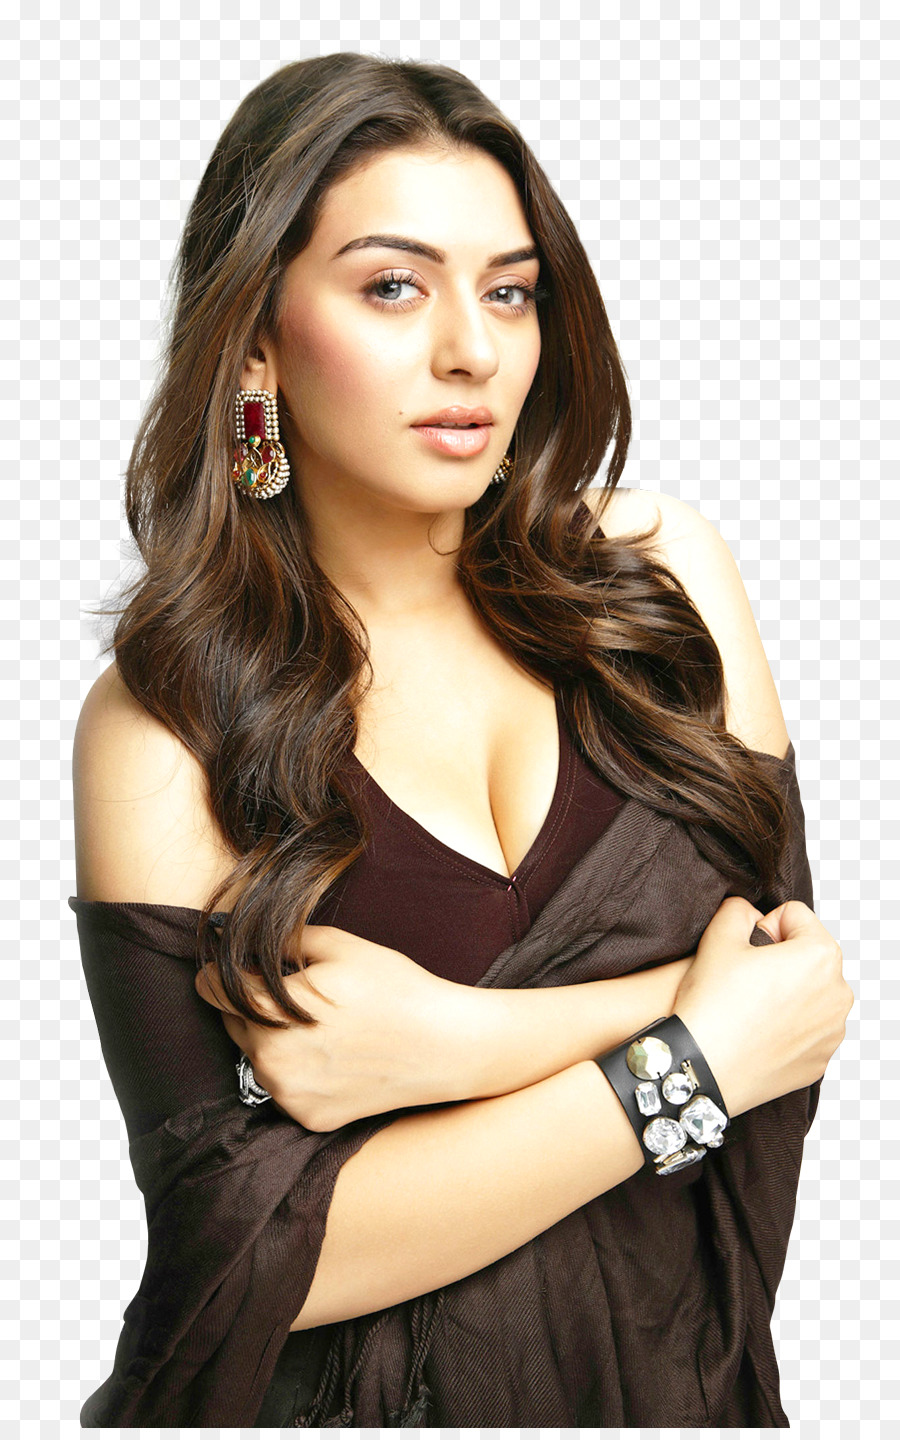 hansika motwani actor tamil cinema bollywood business man - hansika